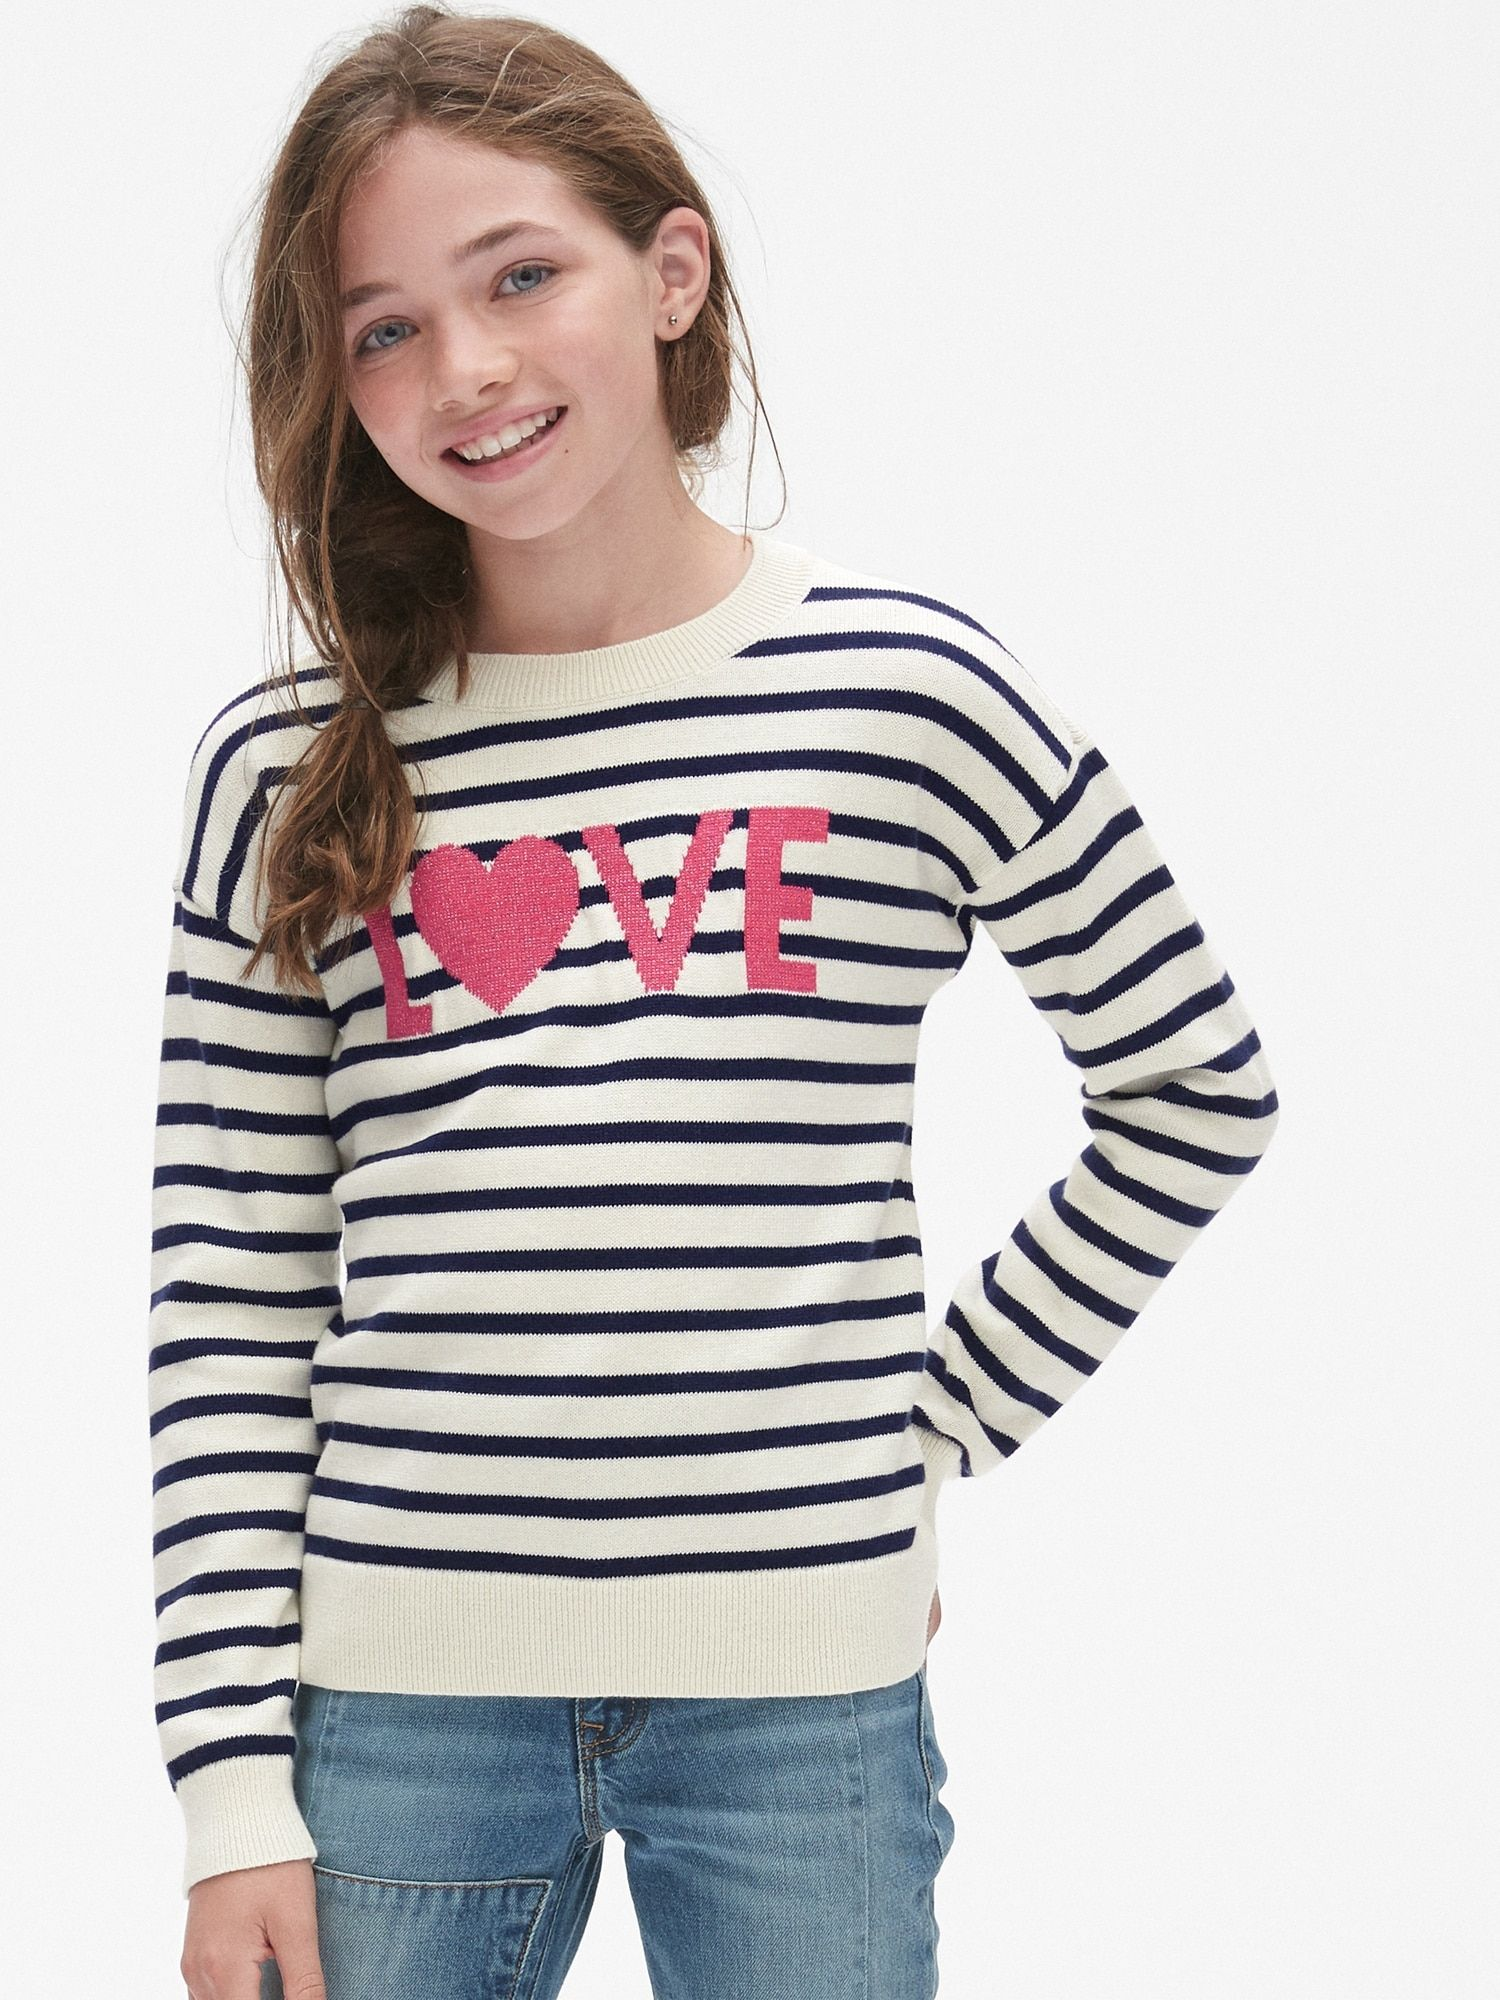 Stripe Metallic Graphic Sweater Gap Graphic Sweaters Girl Outfits Sweaters [ 2000 x 1500 Pixel ]